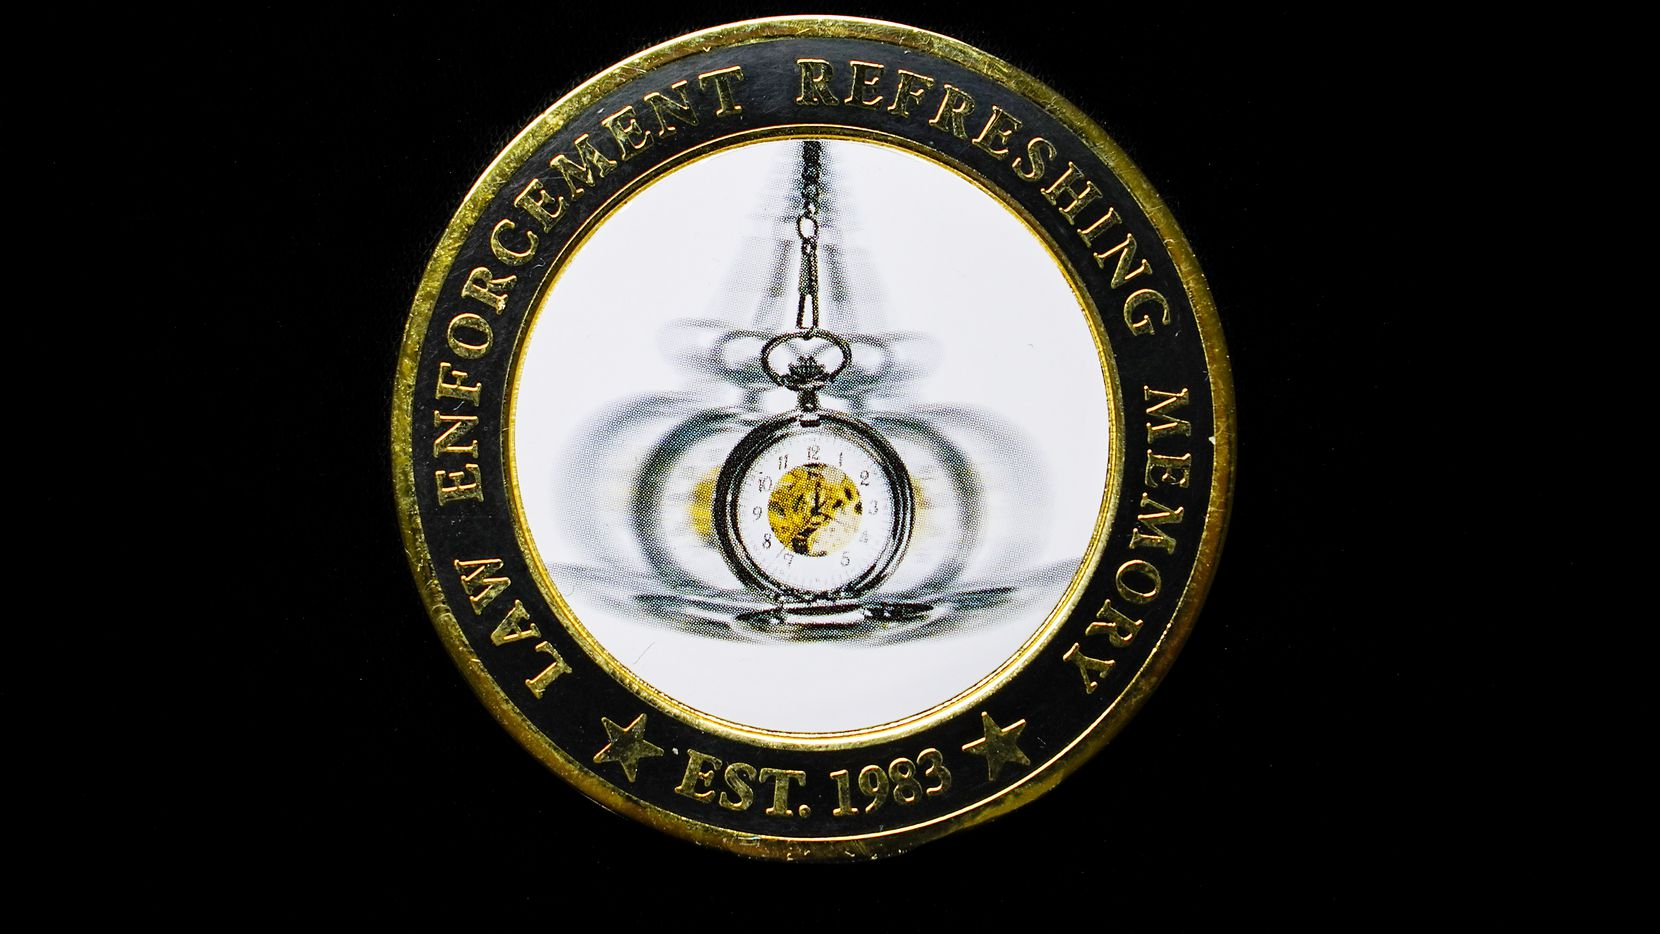 The Texas Association for Investigative Hypnosis sold these commemorative medallions to members at its 2019 annual conference in Huntsville. The association is one of the few, if not the only, remaining societies for police employing hypnosis in criminal investigations. In January 2021, less than a year after The Dallas Morning News published a series exposing the dubious science underlying the practice, the Texas Department of Public Safety ended its hypnosis program after forty years. (Smiley Pool/Staff Photographer)